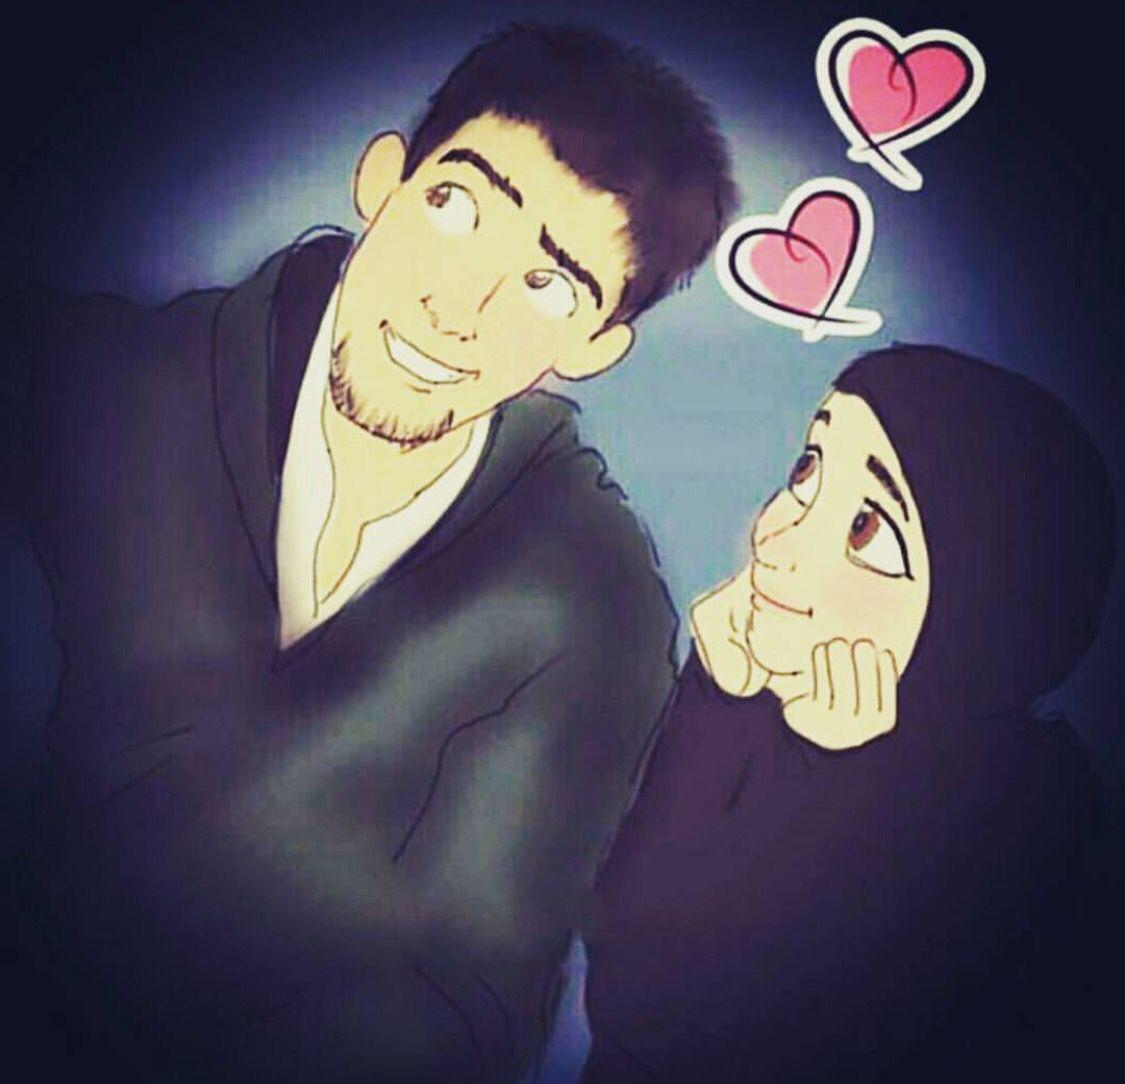 Islamic Anime Wallpapers Beautiful Love Muslim Couples